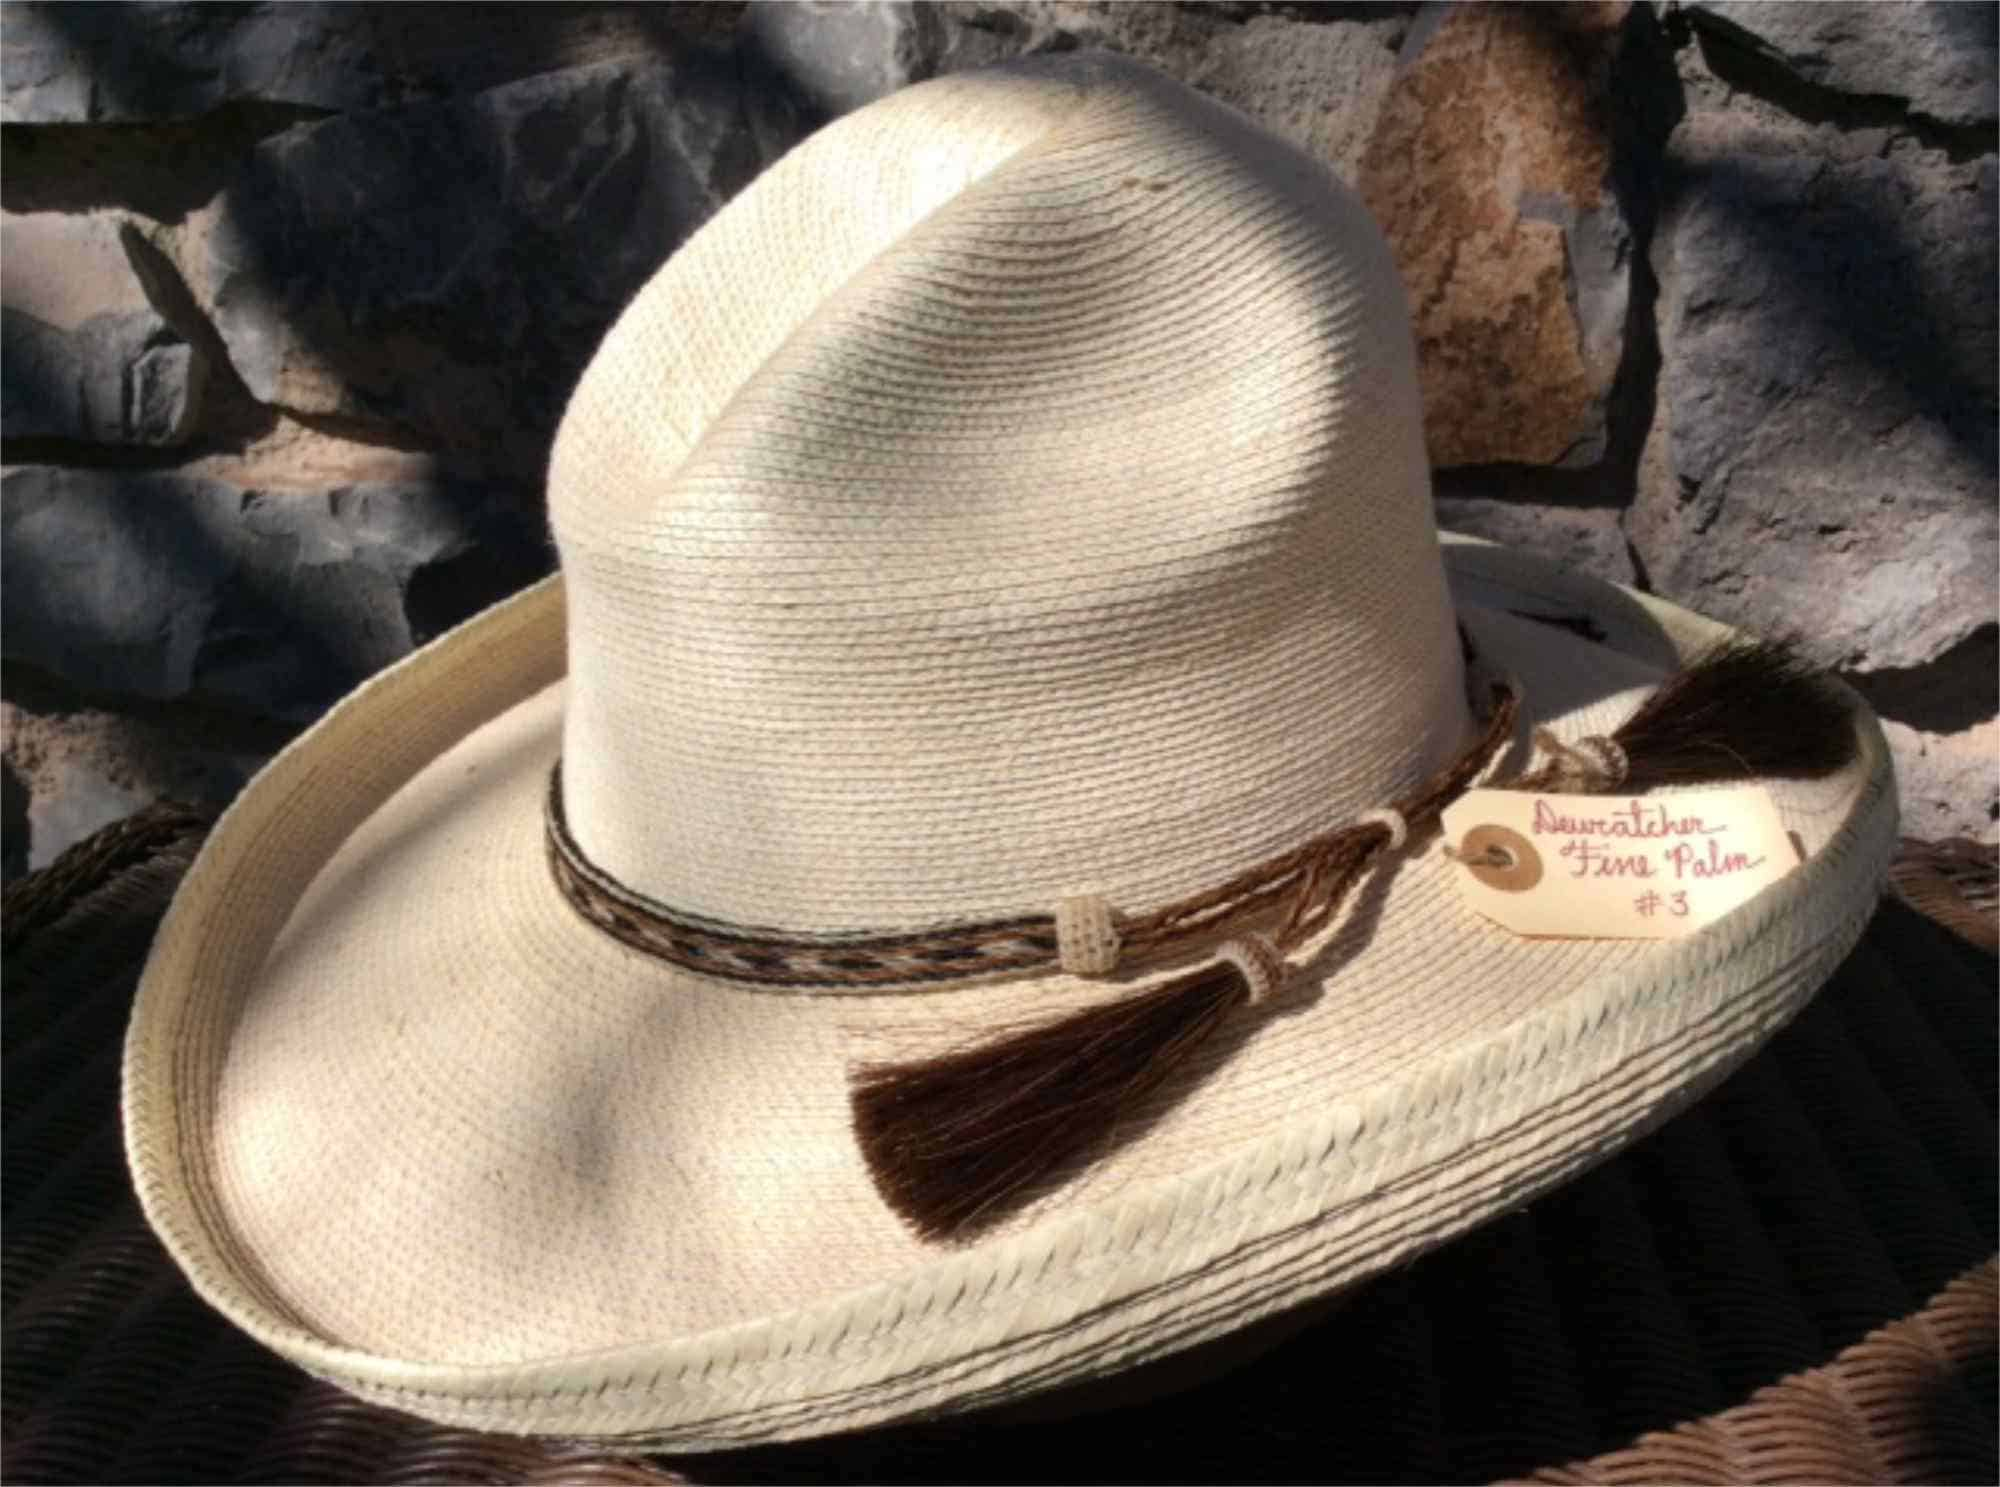 dewcatcher style hat with horsehair band